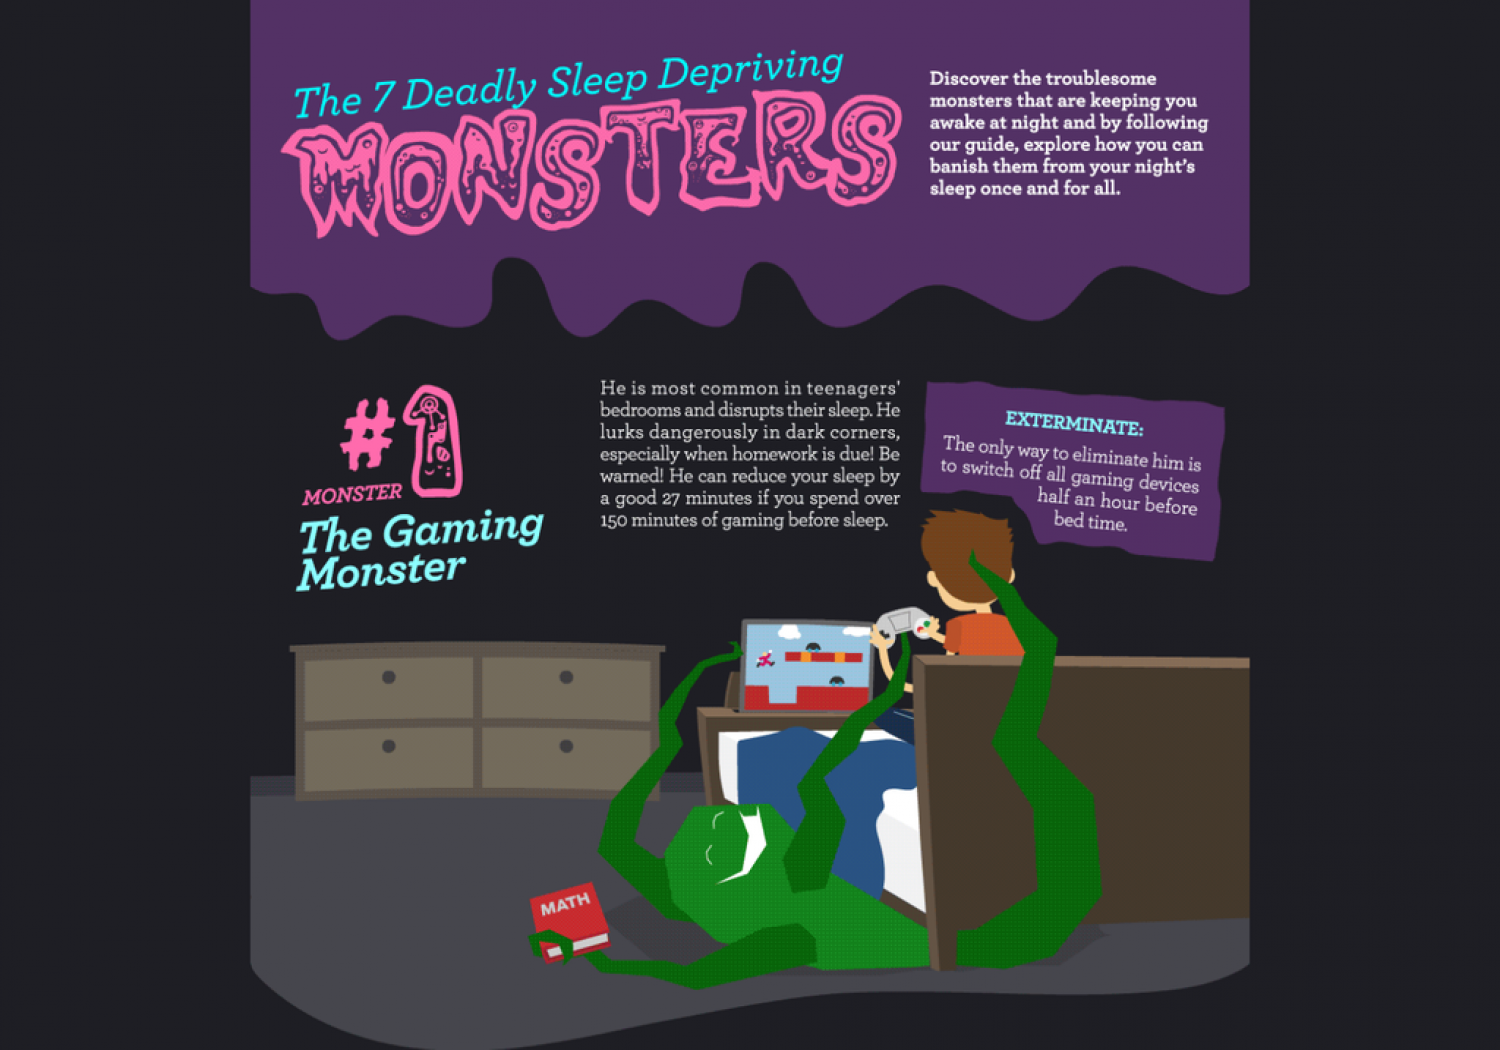 The 7 Deadly Sleep Depriving Monsters Infographic